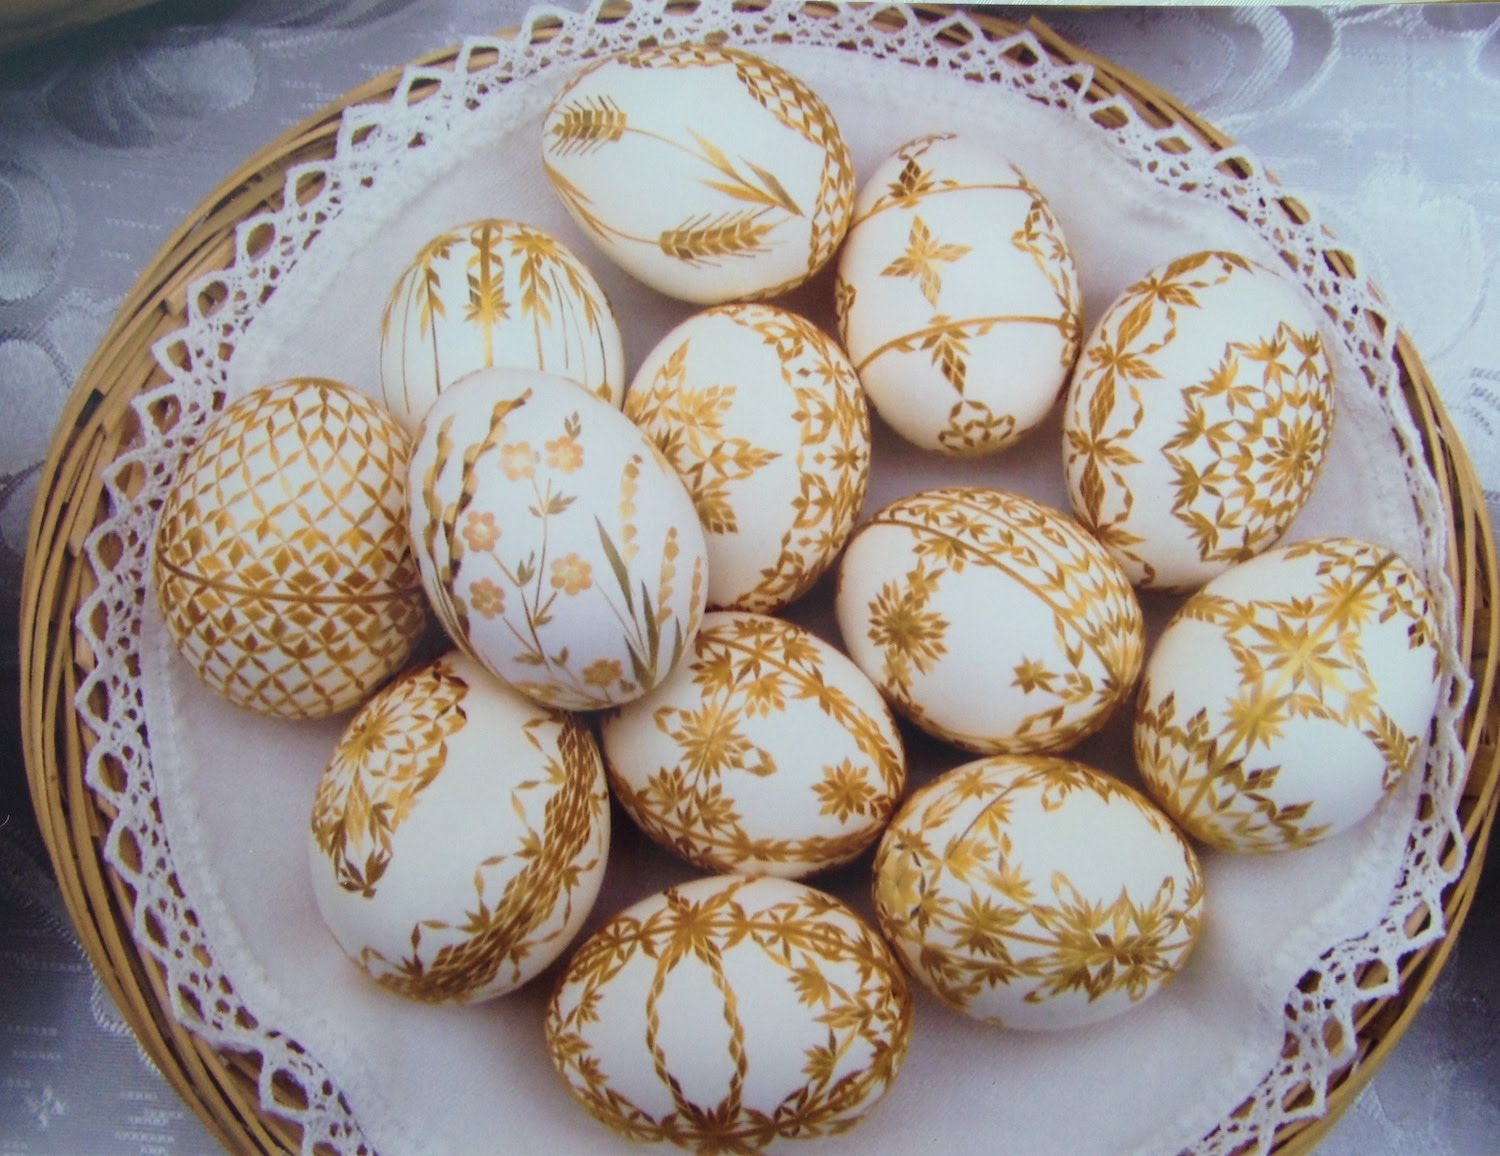 Straw decorated eggs, Marcela Hrabovská, Czech Republic, Courtesy Czech Cookbook dot com, straw eggs, The Straw Shop